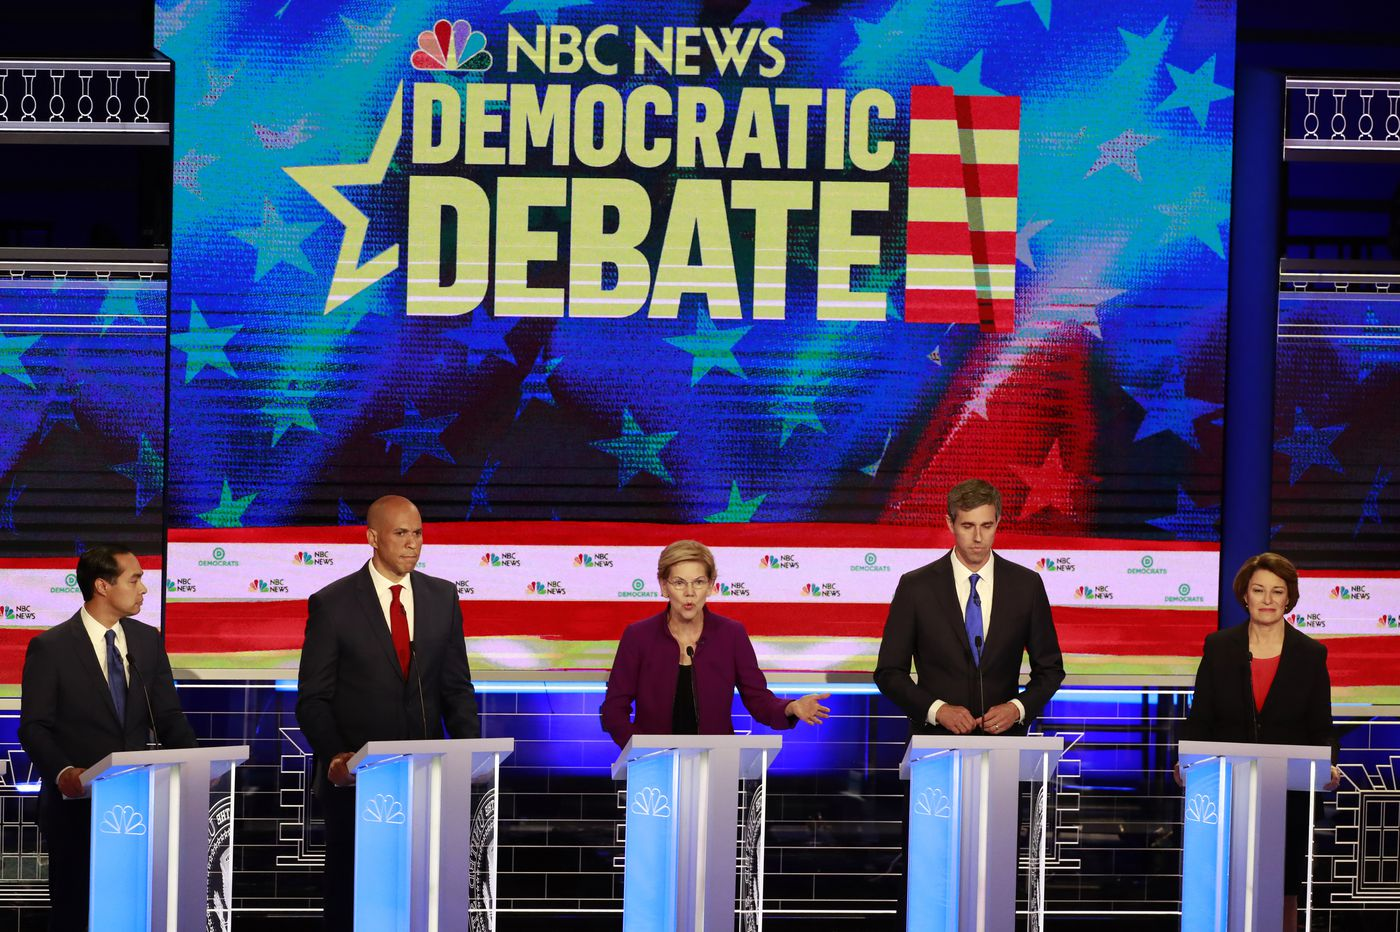 Democrats stake out stands on economy and immigration, clash on health care in first presidential debate